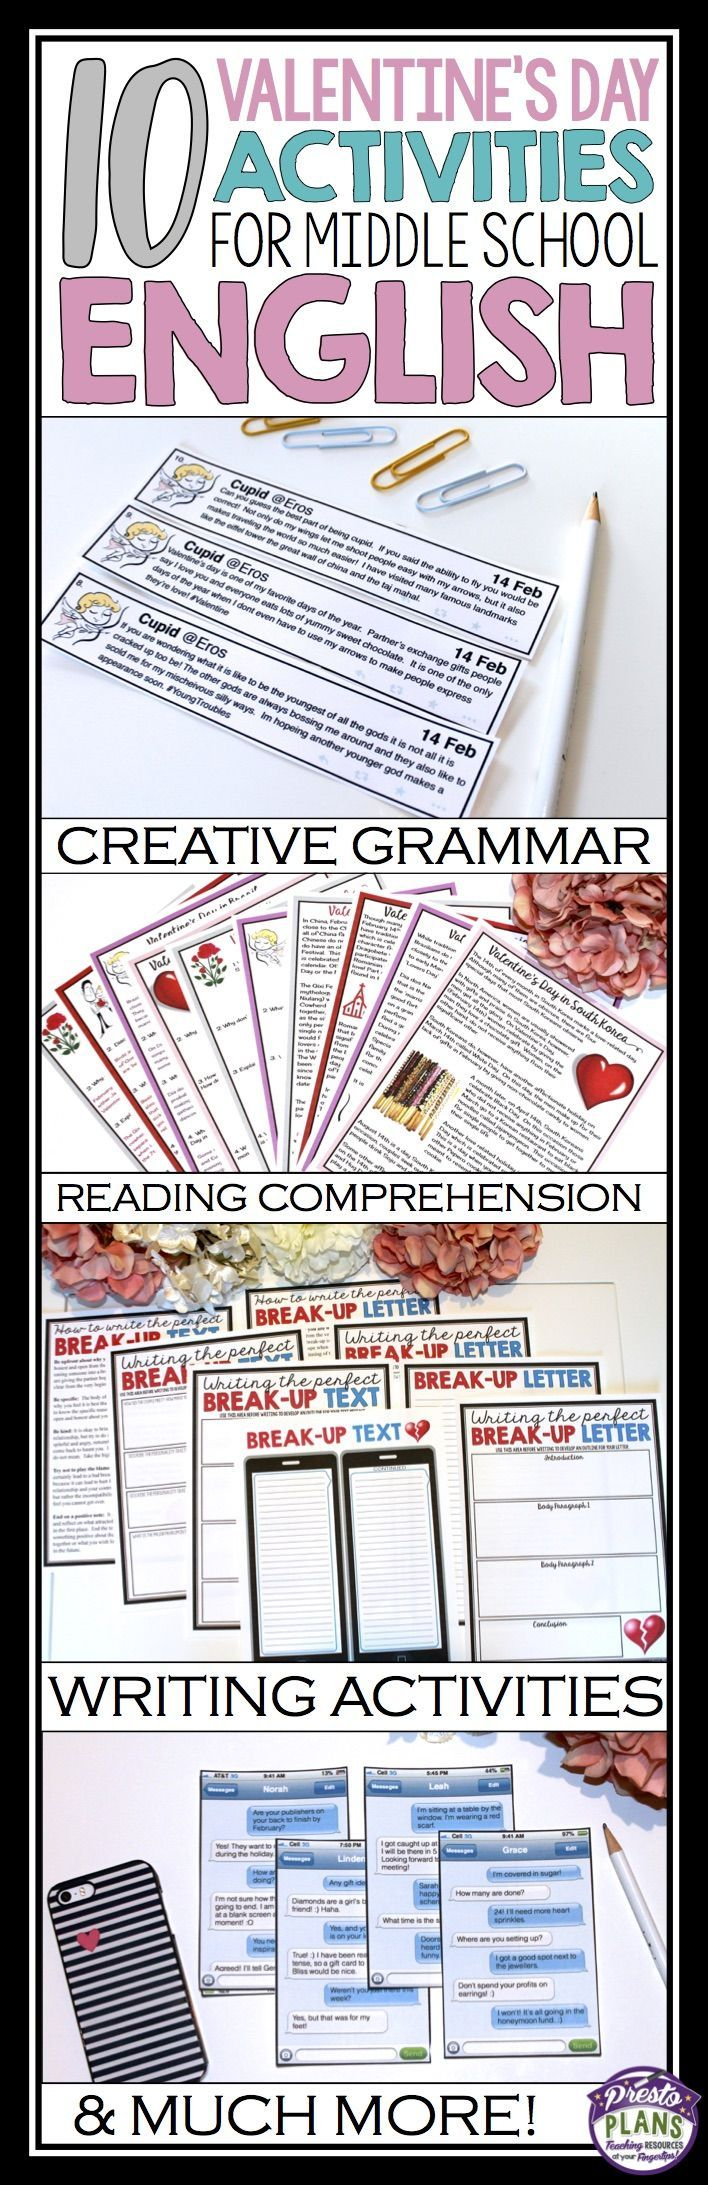 I love finding creative ways to bring the holidays into the classroom.  Here are my top 10 favorite Valentine's Day inspired activities to use with middle school English students!  The activities include grammar, reading comprehension, parts of speech, writing, idioms and much more!